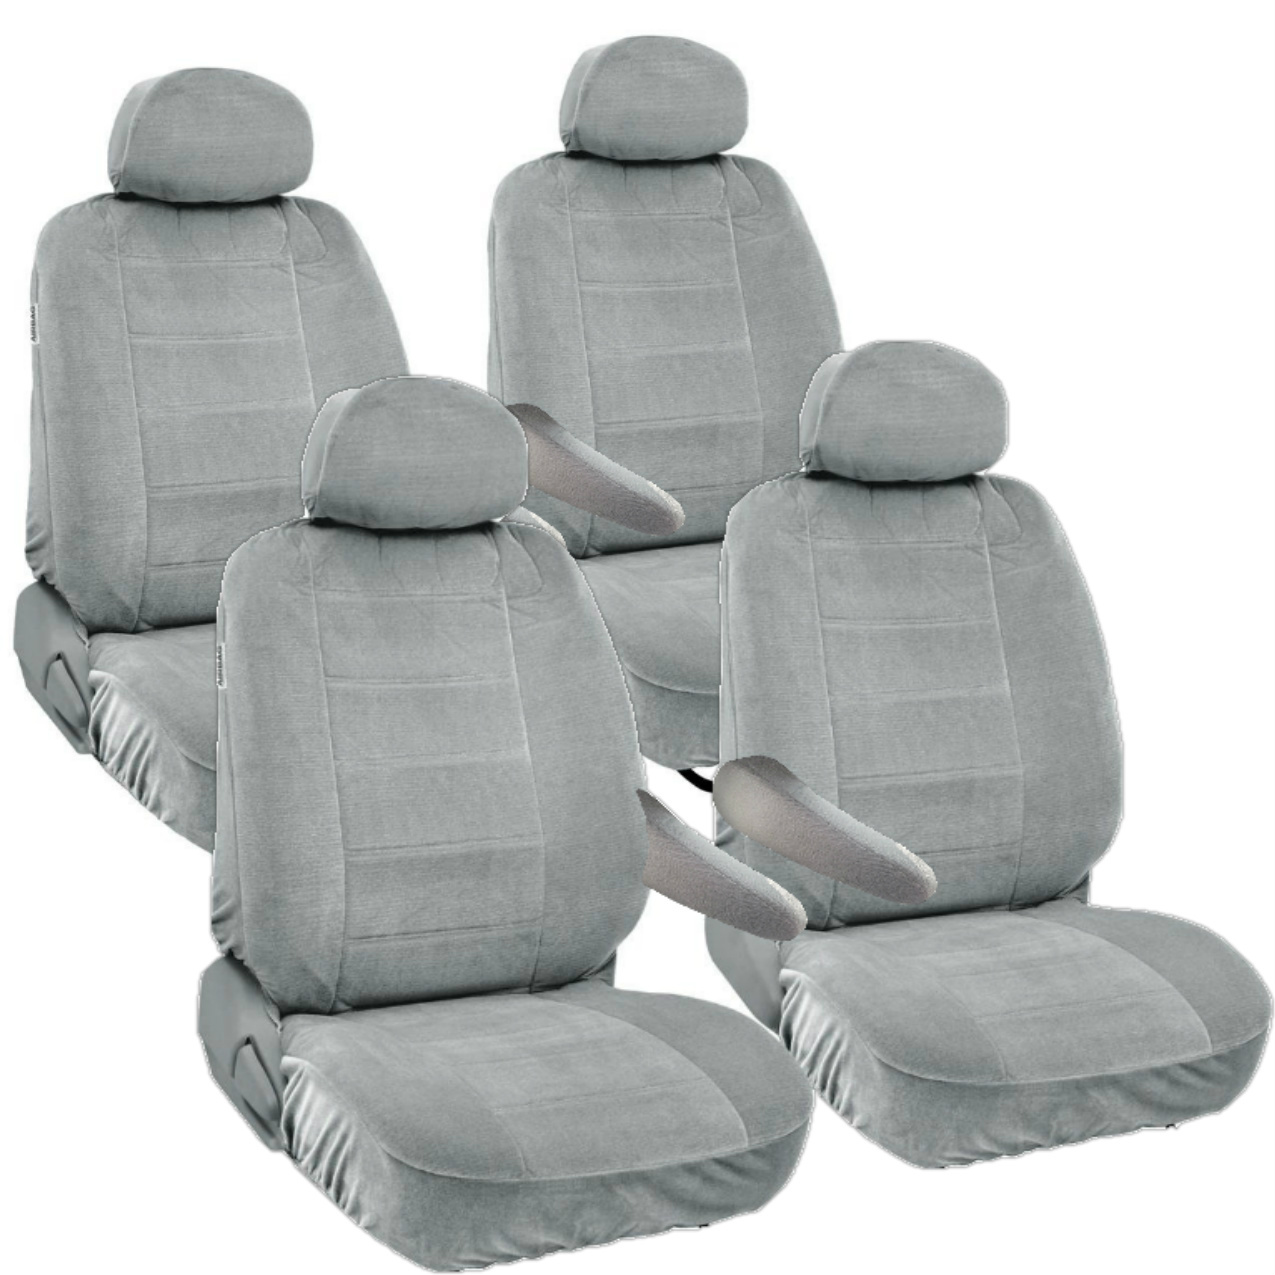 8pc Universal Seat Covers for Van Front & Middle 2 Row Armrest Access Honda Odyssey Gray Grey